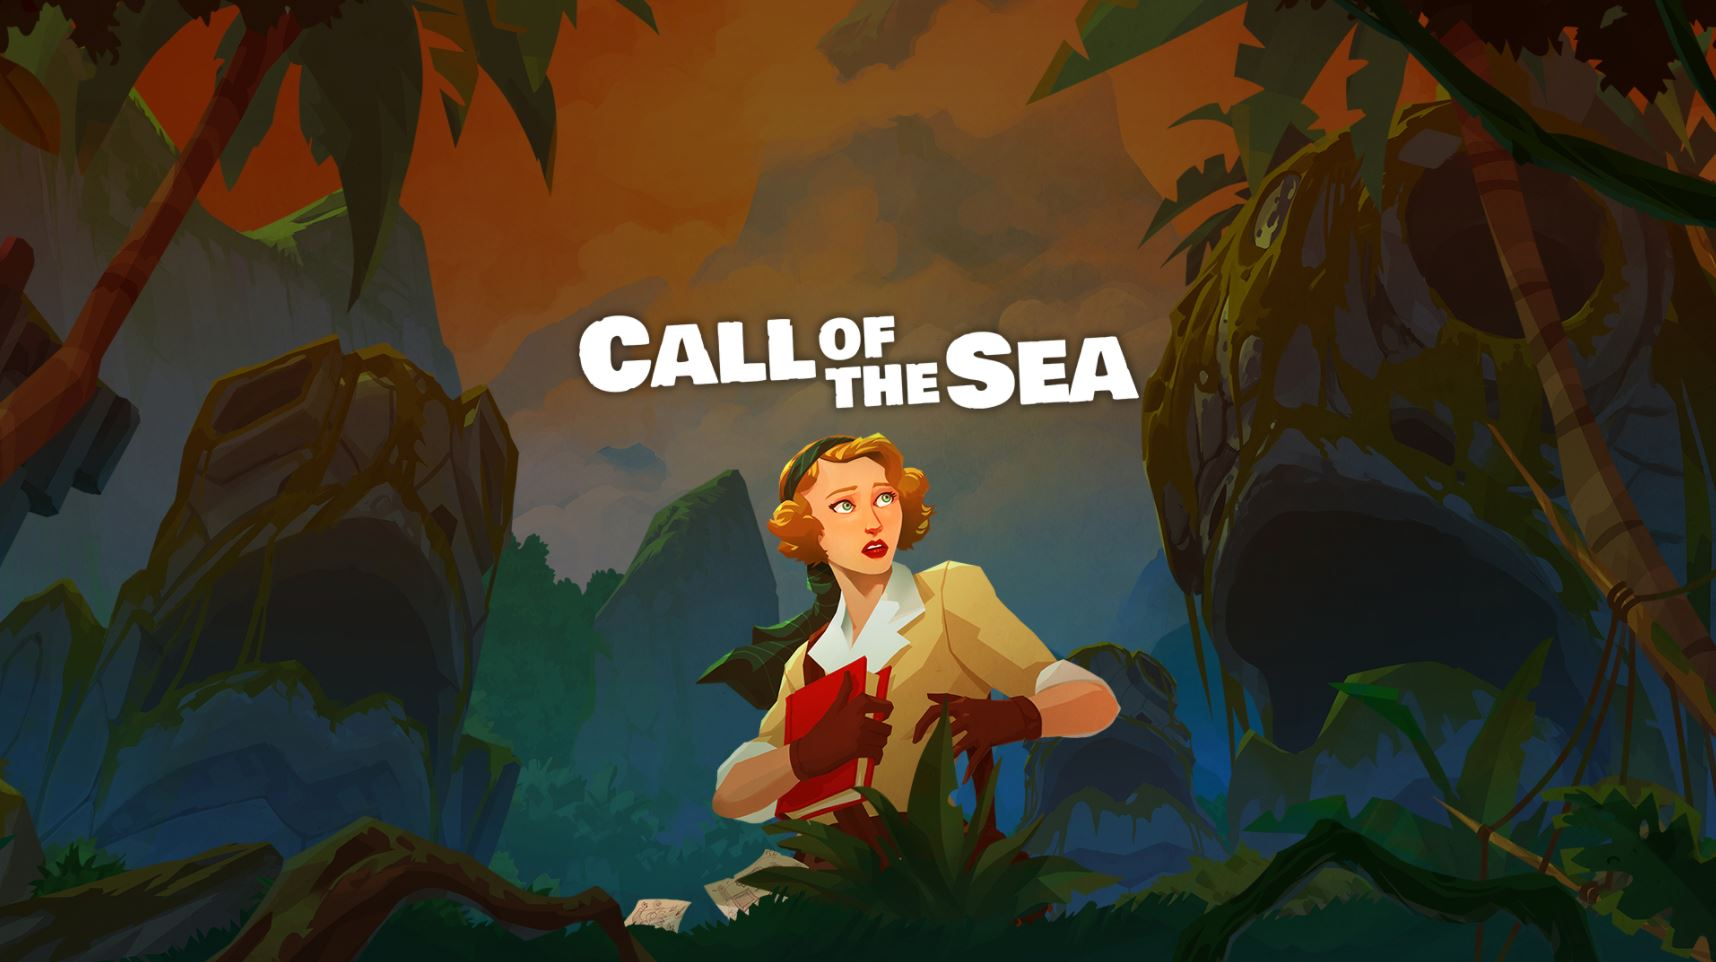 call-of-the-sea-ps5-ps4-news-reviews-videos